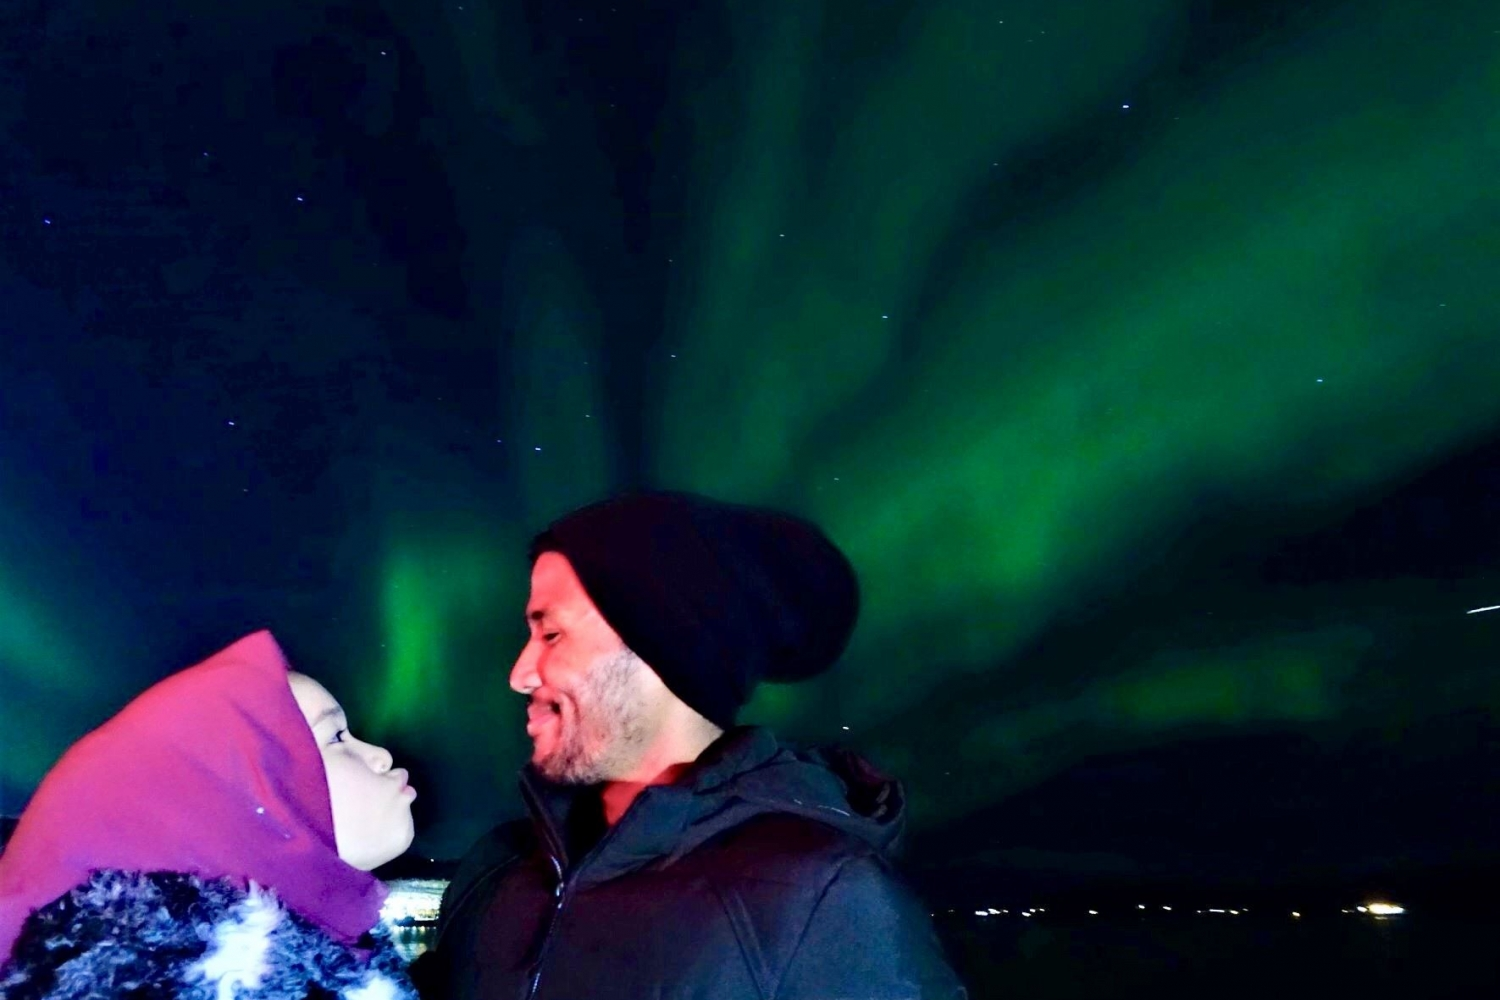 Two persons smiling at eachother with the Northern Lights in the background